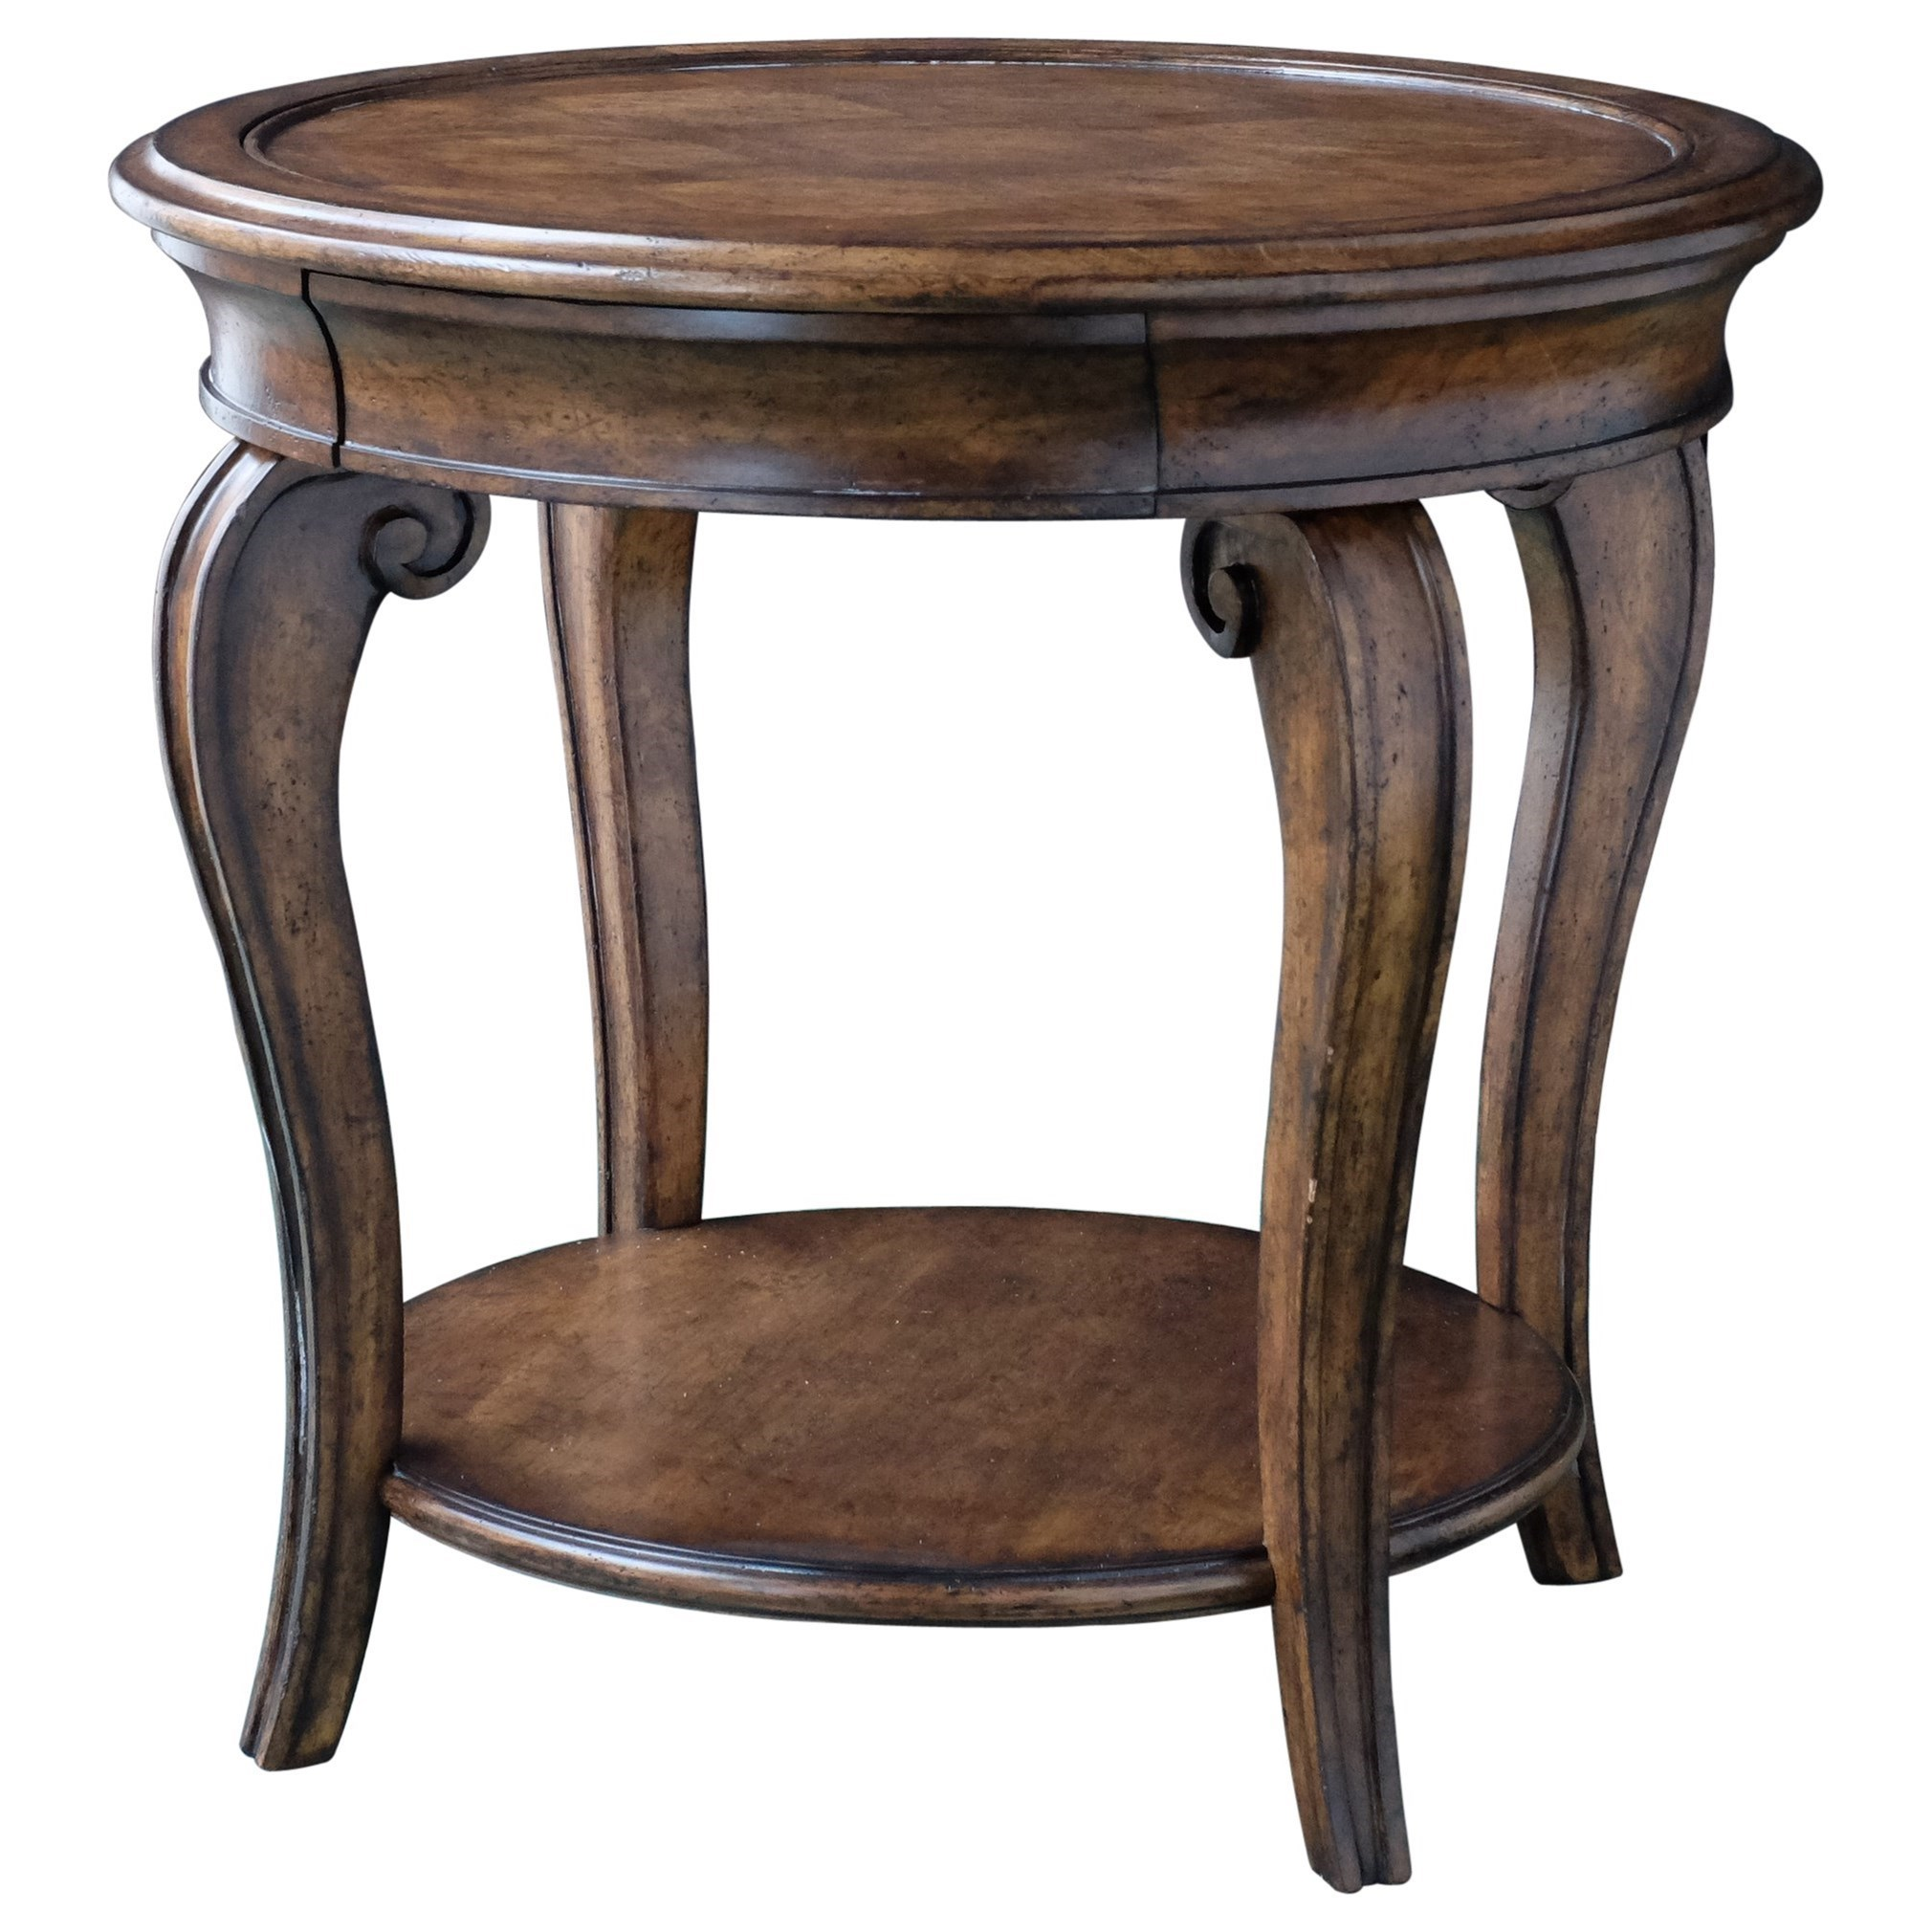 A.R.T. Furniture Inc ContinentalRound Lamp Table